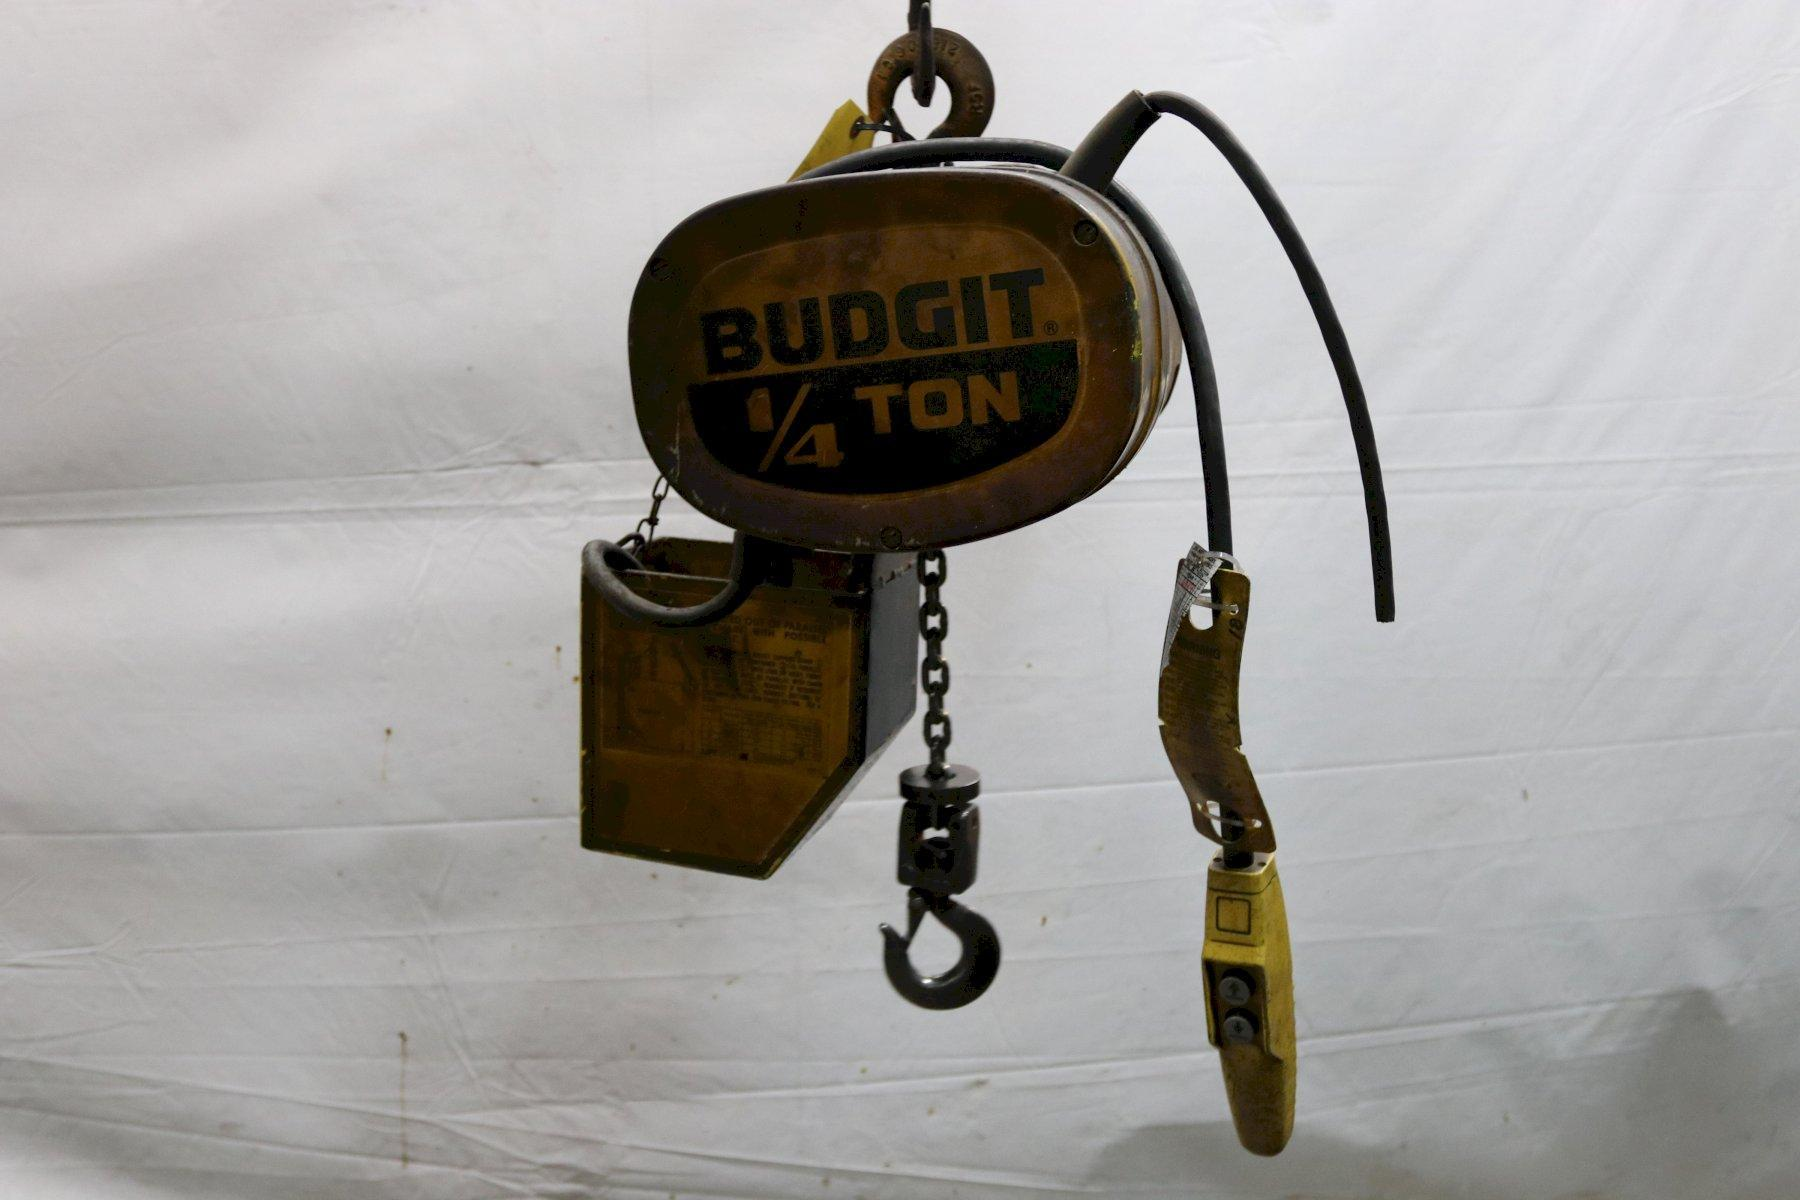 1/4 TON BUDGIT ELECTRIC CHAIN HOIST: STOCK #11998